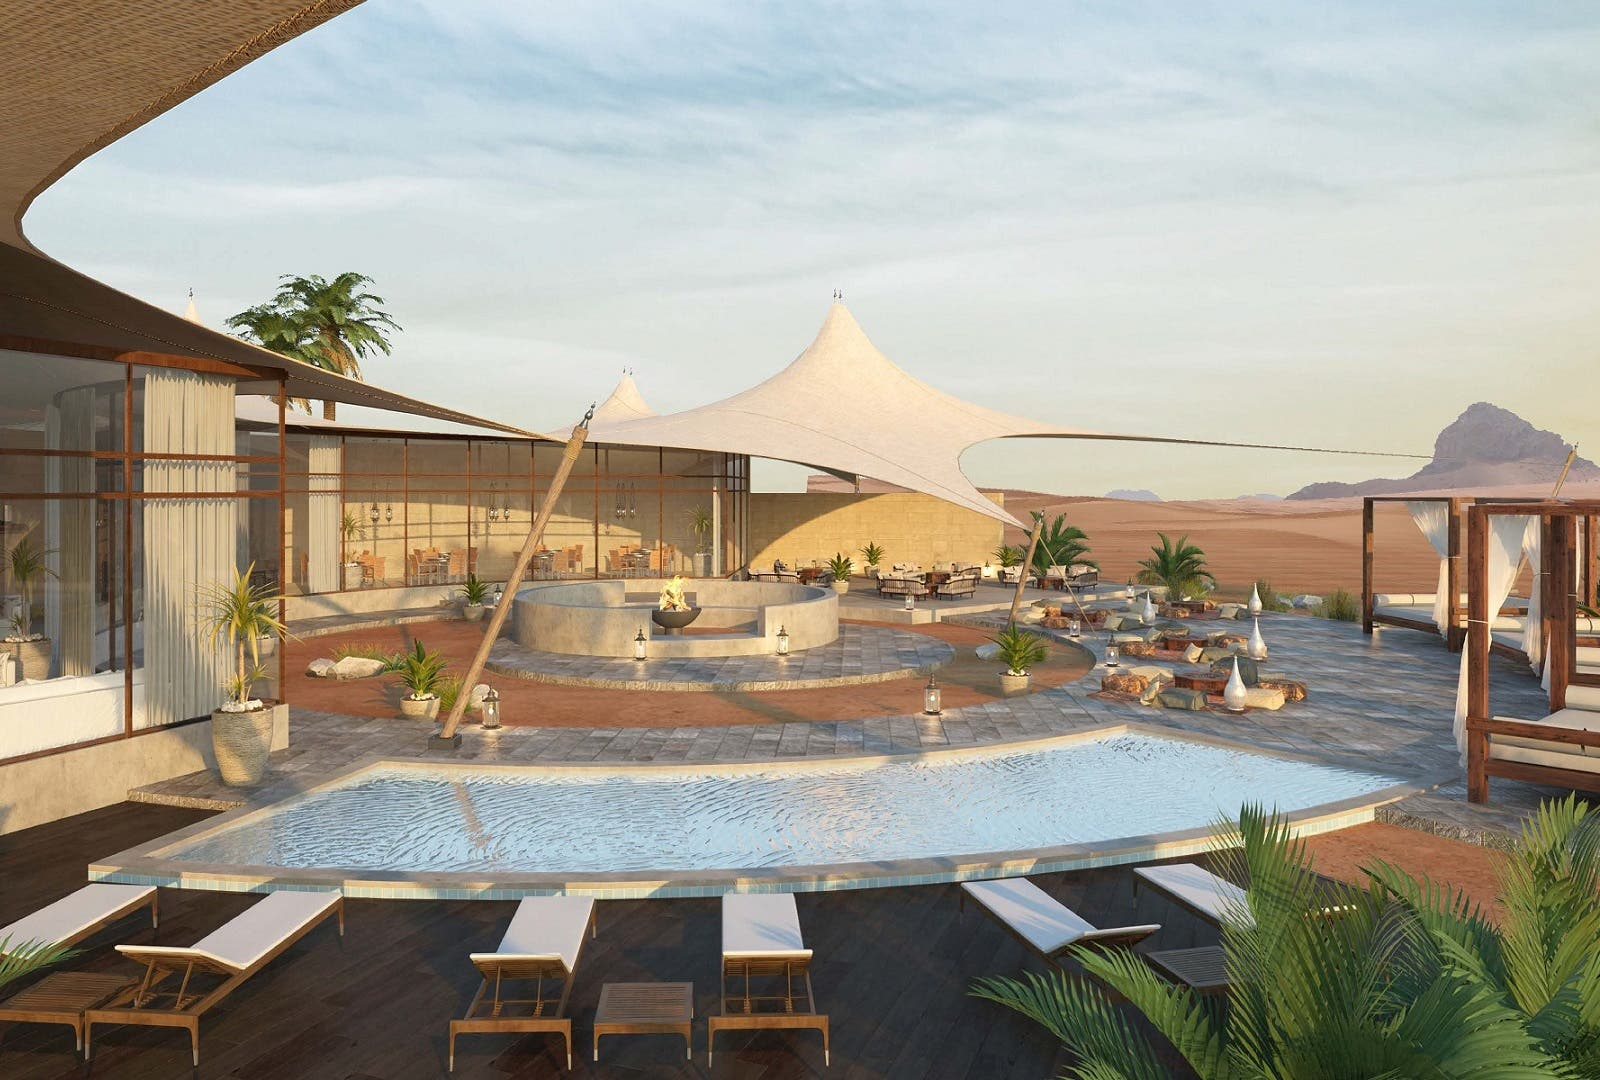 The resort will include 45 exclusively designed vacation villas, each with the luxury of its own decking and private swimming pool. (Supplied)